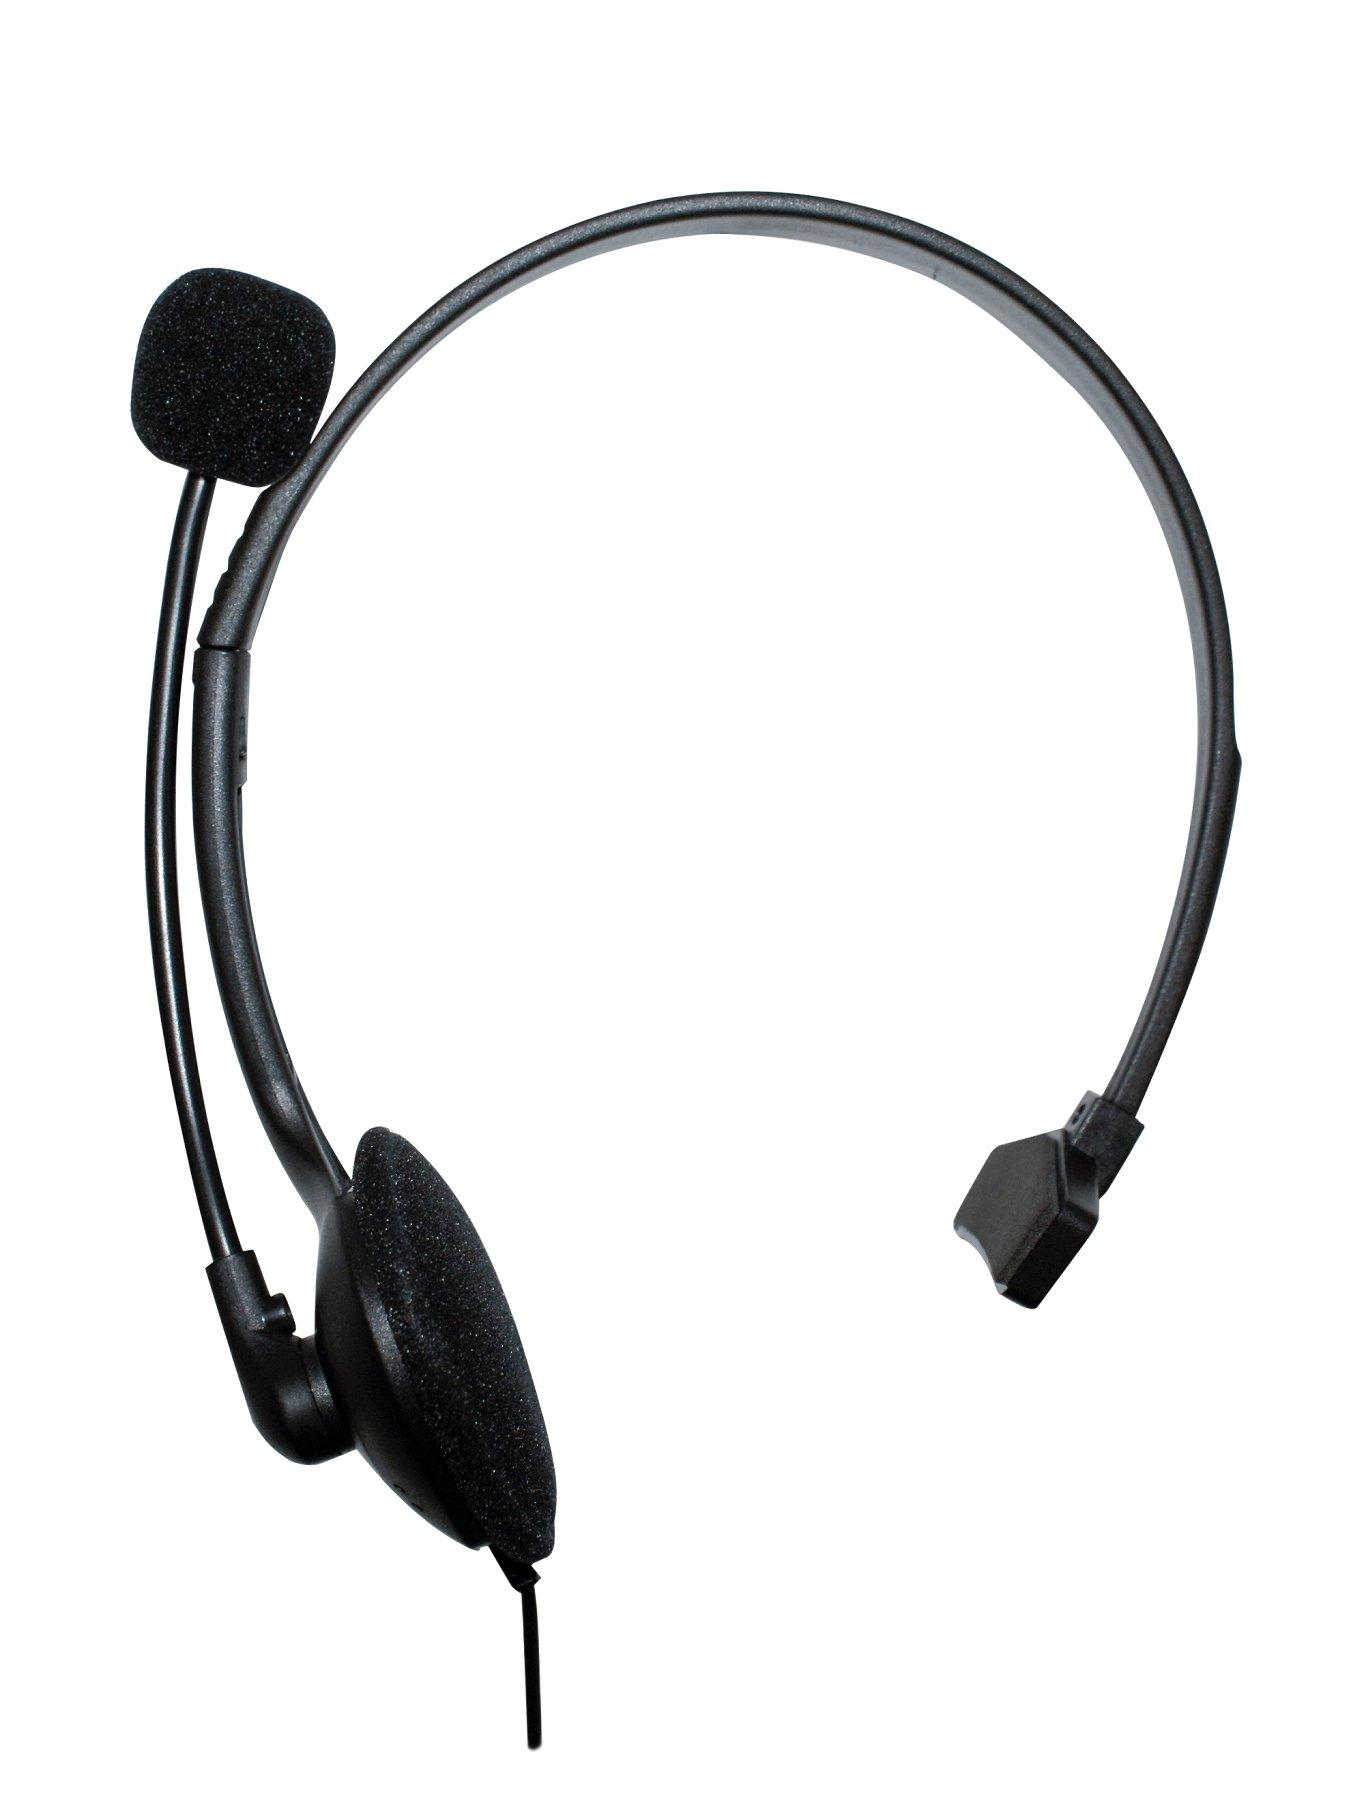 Orb Xbox 360 Wired Headset at Littlewoods